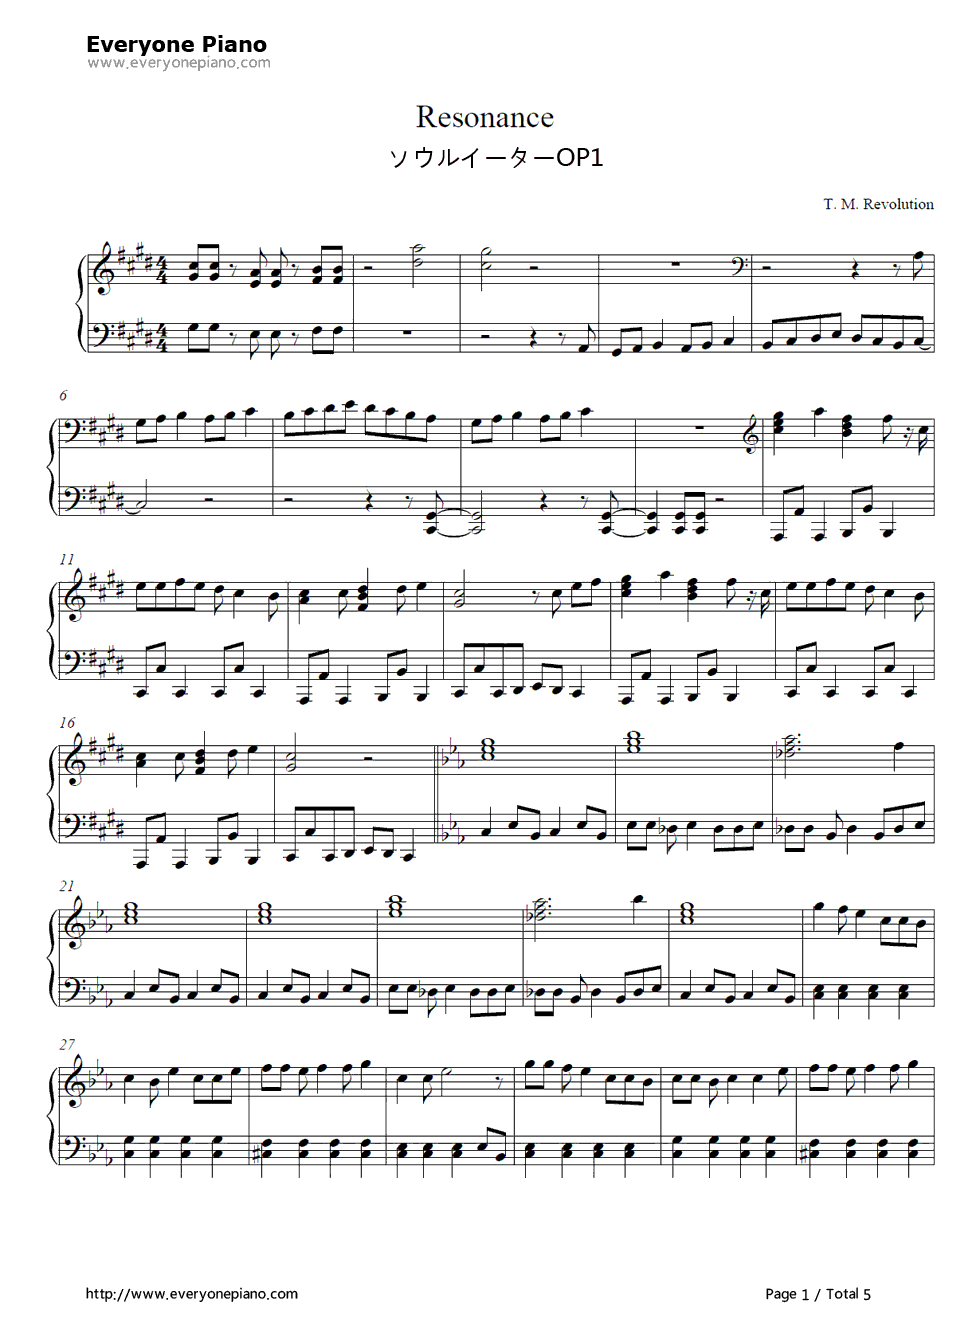 Resonance-SOUL EATER OP1 Stave Preview 1-Free Piano Sheet Music u0026 Piano Chords